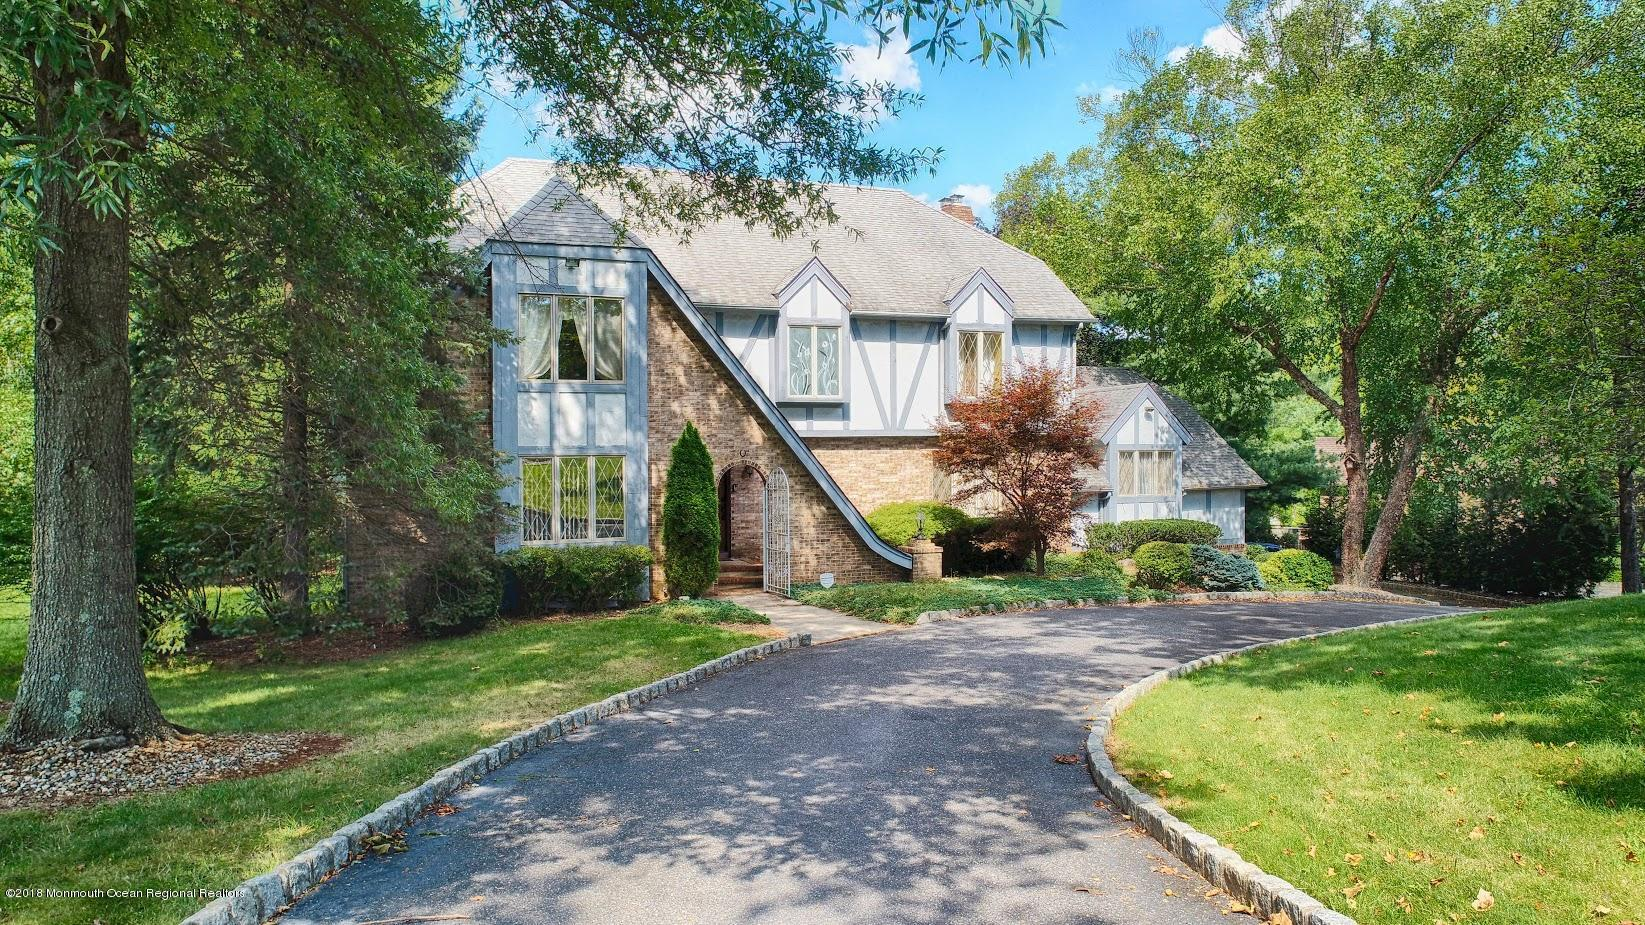 31 Morgan Ct, Freehold, NJ 07728